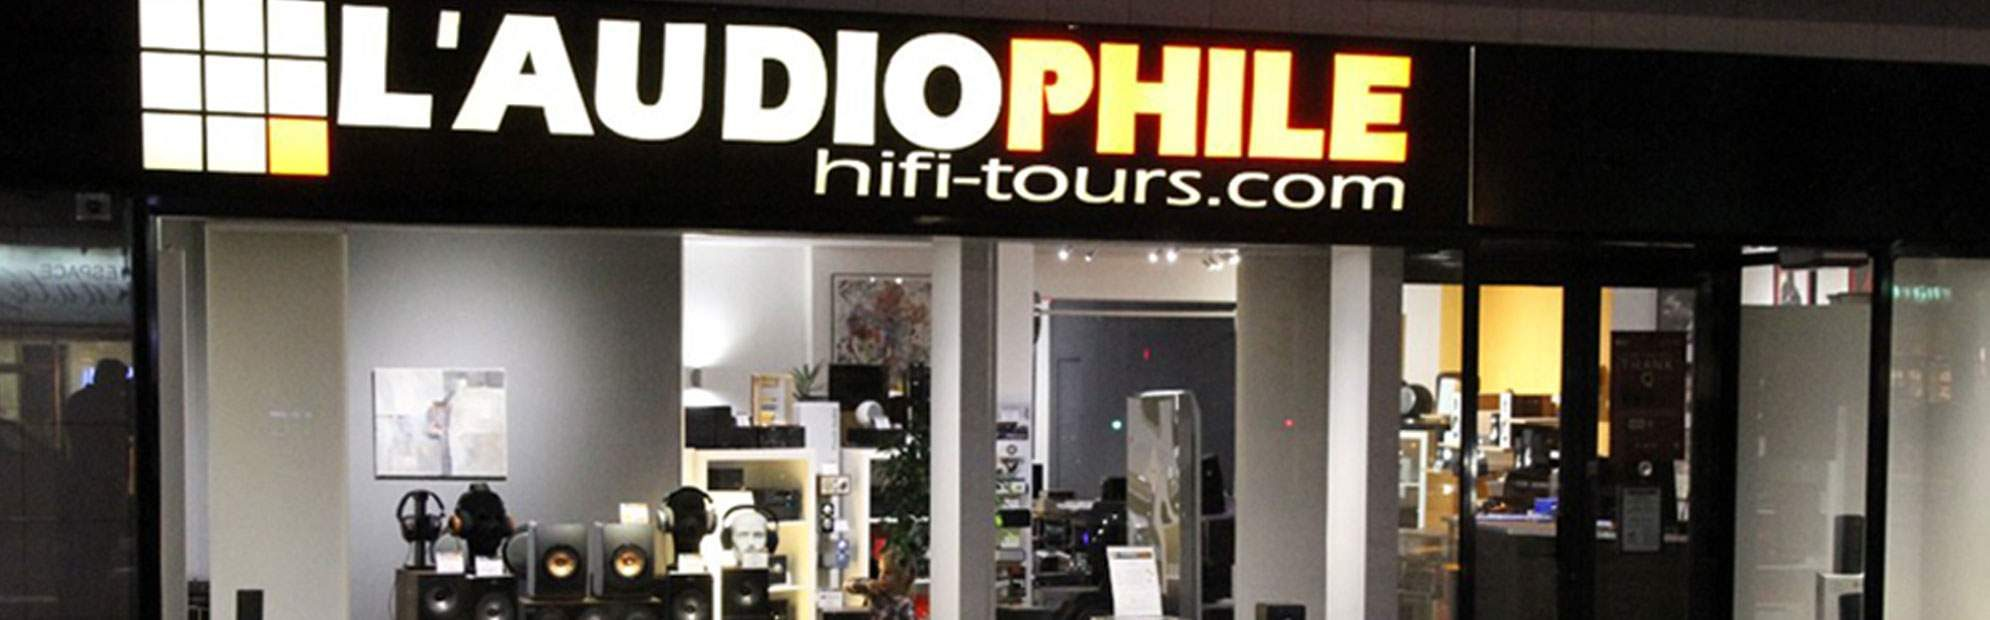 Magasin audiophile